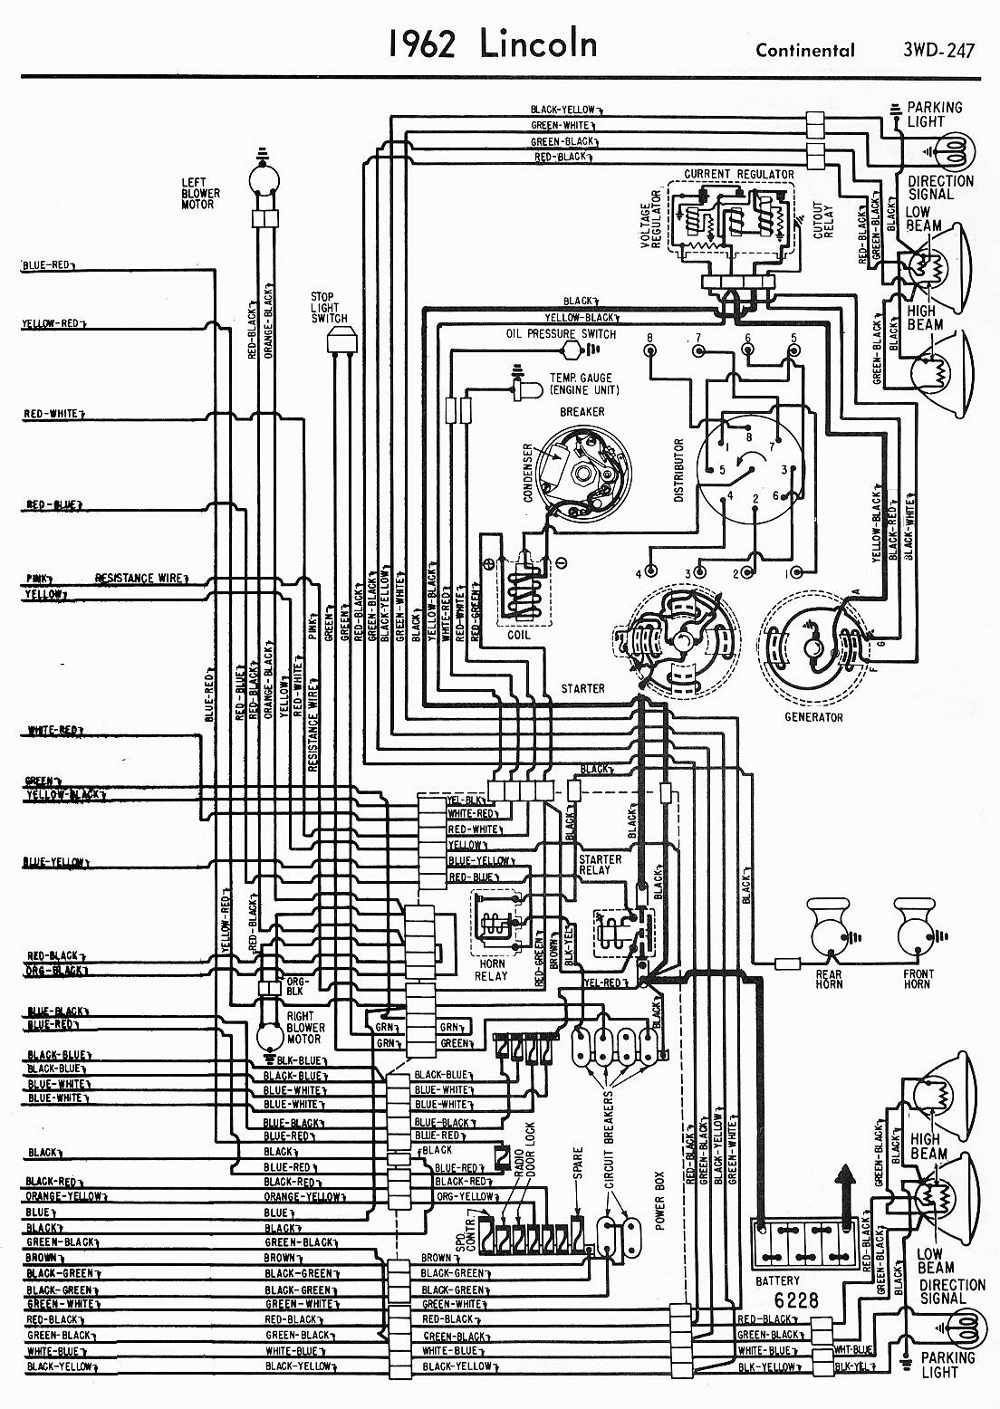 1966 Lincoln Wiring Diagram Everything About 1996 Ford Ranger Diagrams Manual Continental Convertible Wiringdiagram Image Details Rh Motogurumag Com Top